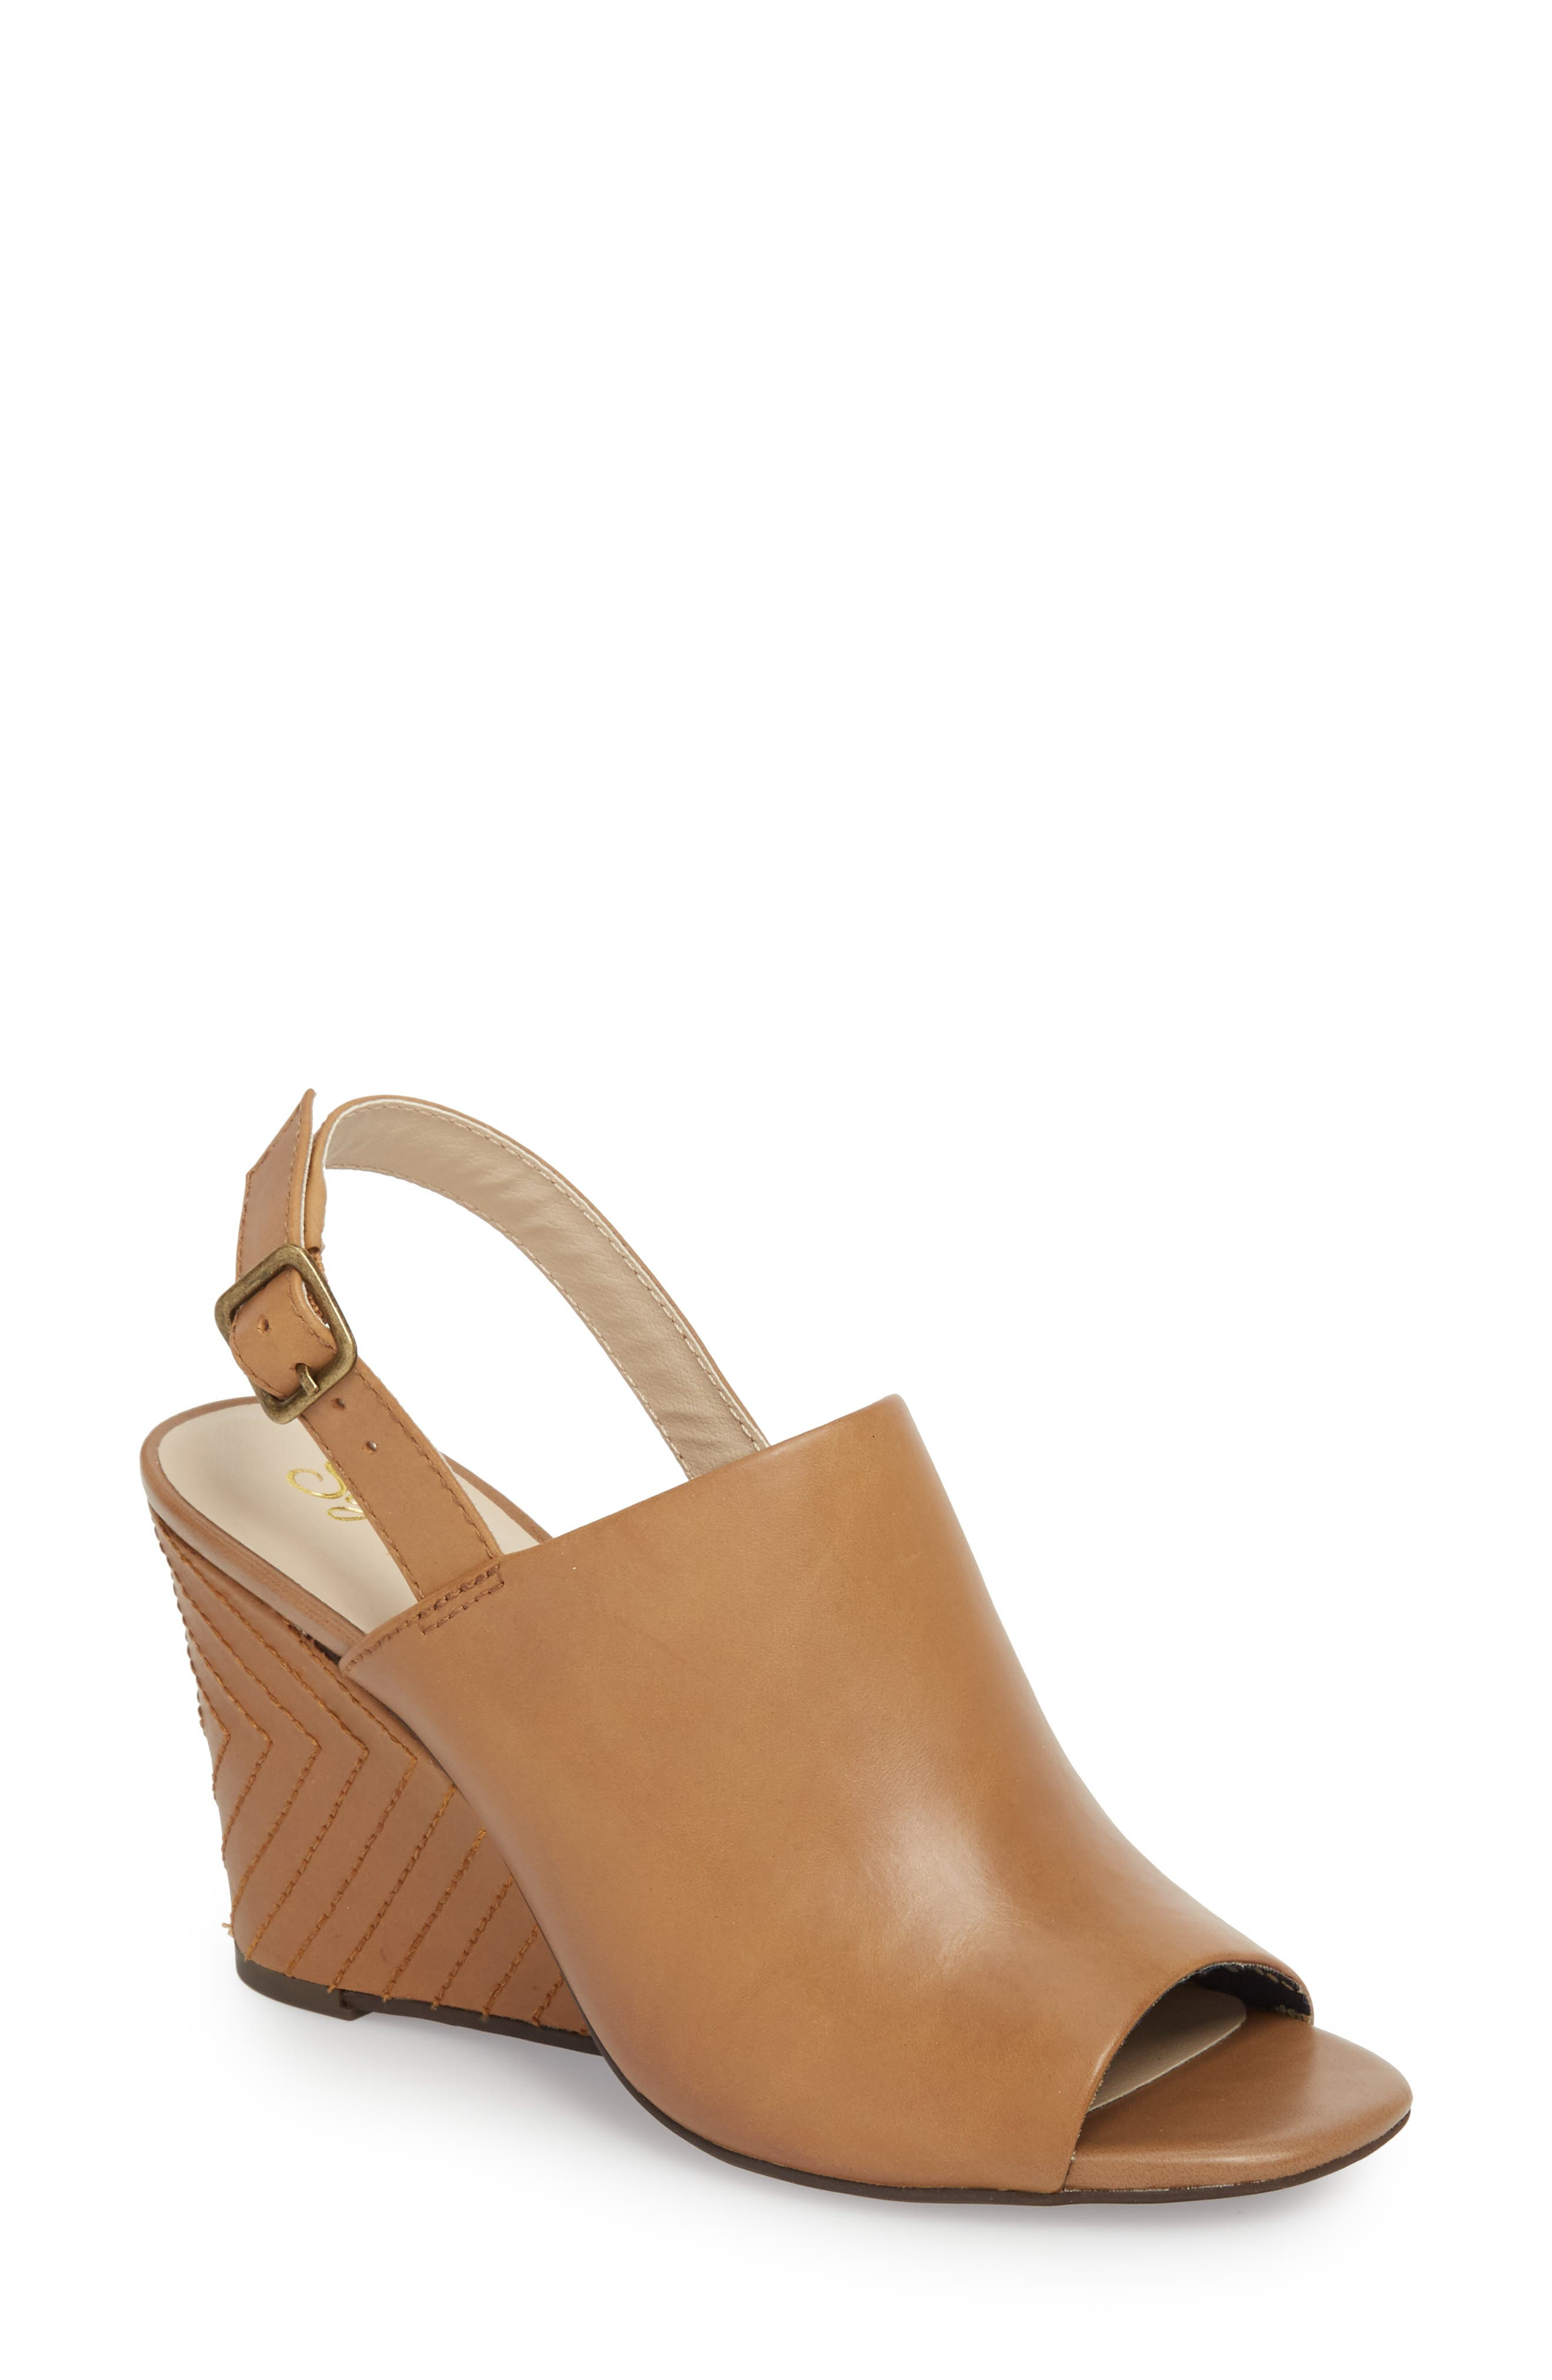 Abyssal Wedge Sandal,                             Main thumbnail 1, color,                             TAN LEATHER